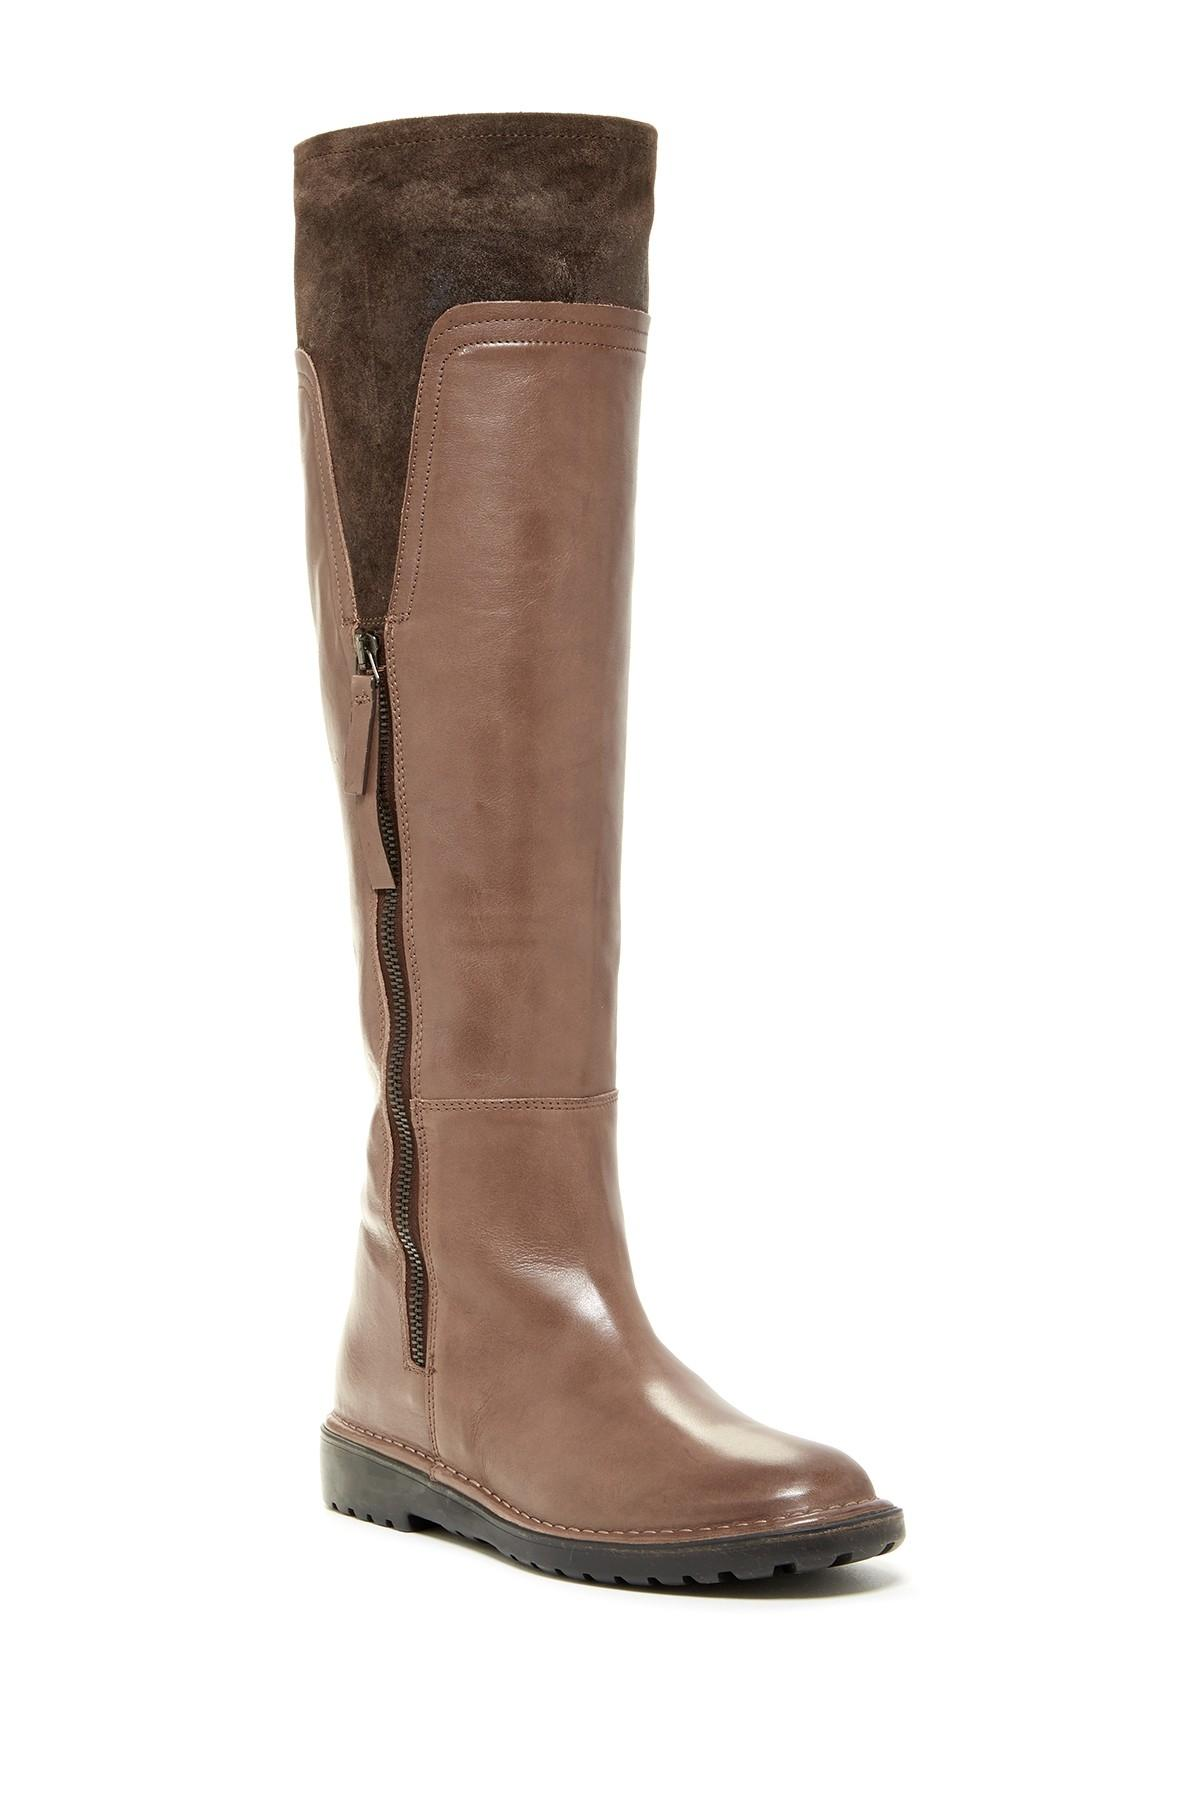 Alberto Fermani Tall Knee Hight - Color - Tortora Brown Taupe ...